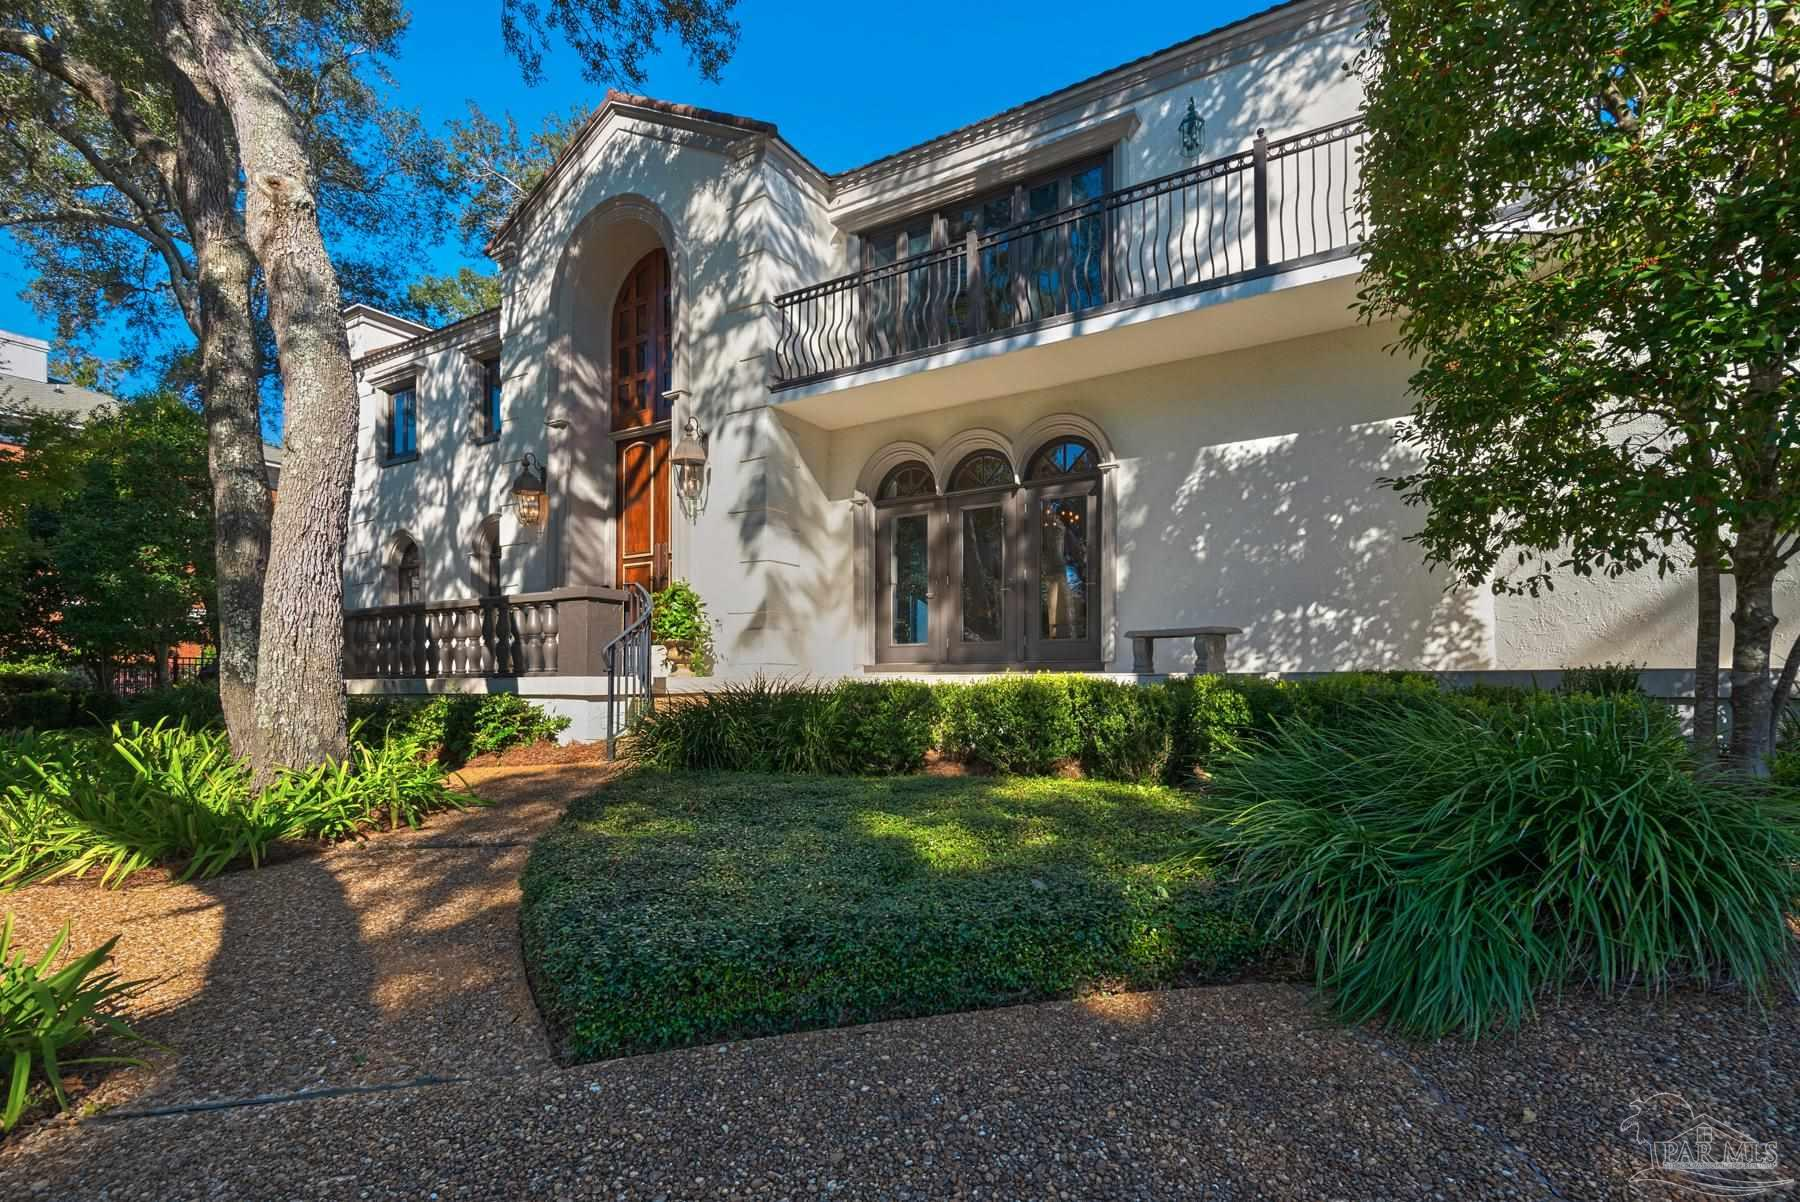 Location, location, location, view, view, view! This waterfront home has it all. It is nestled in a secluded cul de sac amongst gorgeous old oaks and across the street from a never to be developed green space.  On the magnificent water side, there is an unobstructed panoramic view of almost 180 degrees stretching from the Pensacola Bay Bridge to the Garcon Point Bridge. Step inside through the massive custom entry doors with views of the bay in every direction.  The entry is highlighted by a floating staircase featuring custom iron railing by Brownsville Ironworks .  To the left is the formal living room with its wall of French Doors and to the right is the formal dining room with a matching wall of French doors. The kitchen looks out to the bay, and the freeform Gunite pool and covered patio.The great room and bar area are surrounded by more French doors, and large windows.  Your view is everywhere. There are 2 very large bedrooms are on the first floor and each has its own full bath.Upstairs is the master suite featuring granite countertops, a large jetted tub, an oversized walk-in marble shower and a water closet.  The walk-in closets have all been customized and well appointed.The fourth bedroom also has its own full bath.The home is located close to shopping, A+rated schools and a short distance to Pensacola.Additional features include a whole house generator, 3 a/c units(all new in the past 5 years),and an oversized garage.Last but not least is the seawall and walkway with special railings that span the waterfront.